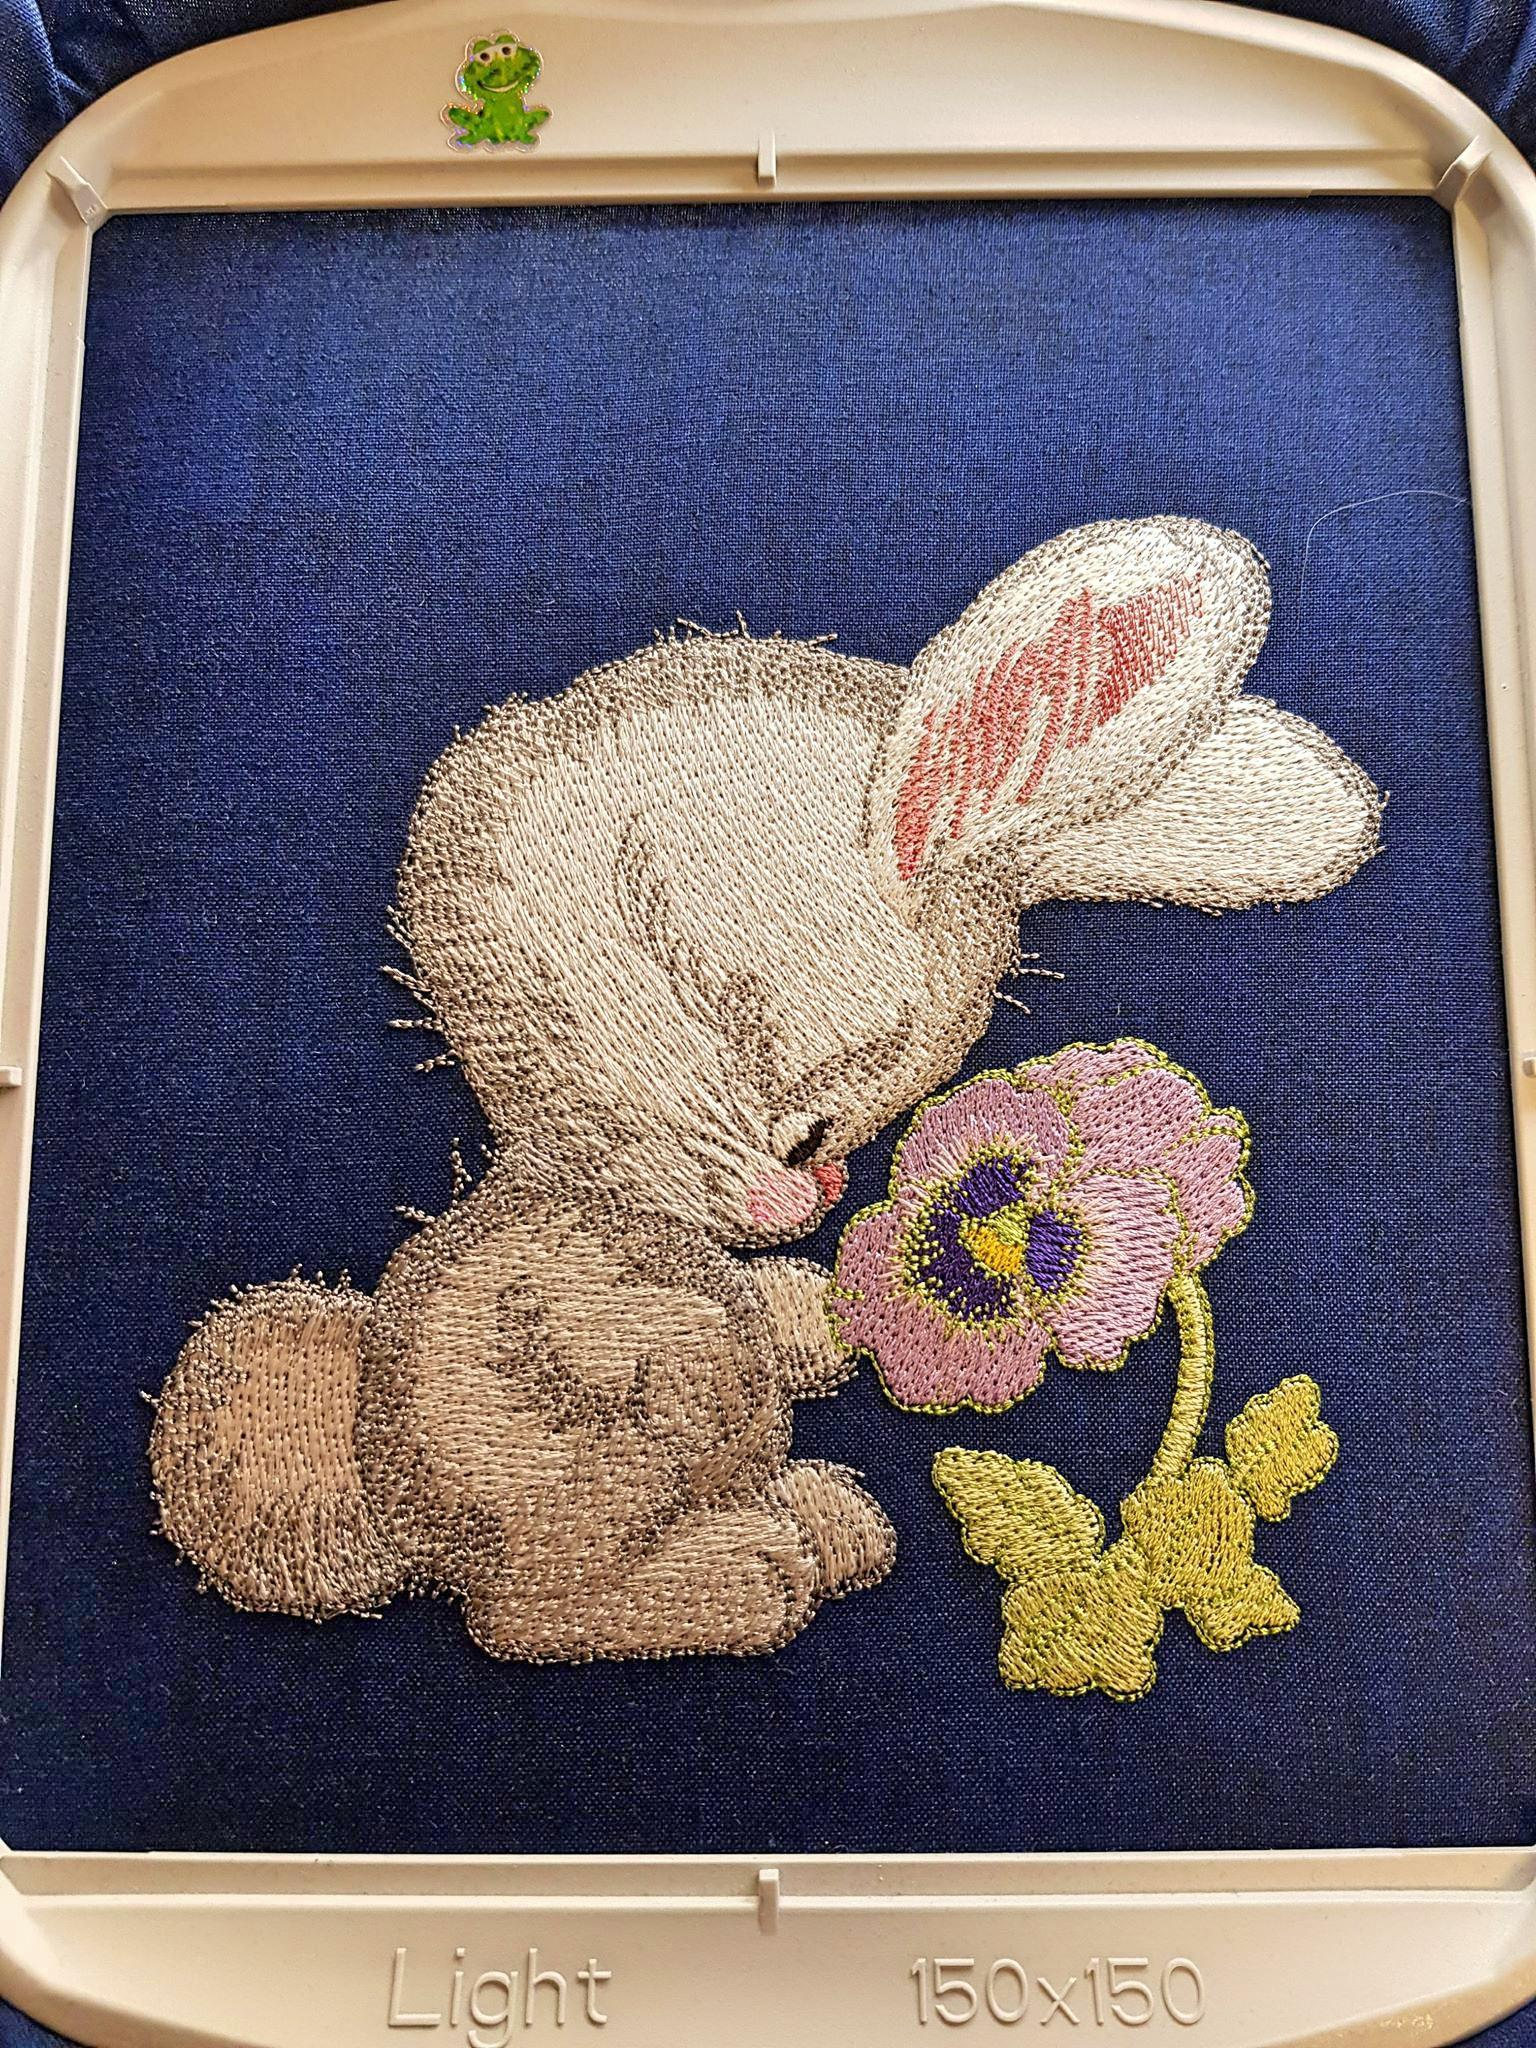 In hoop Bunny smells pansy embroidery design